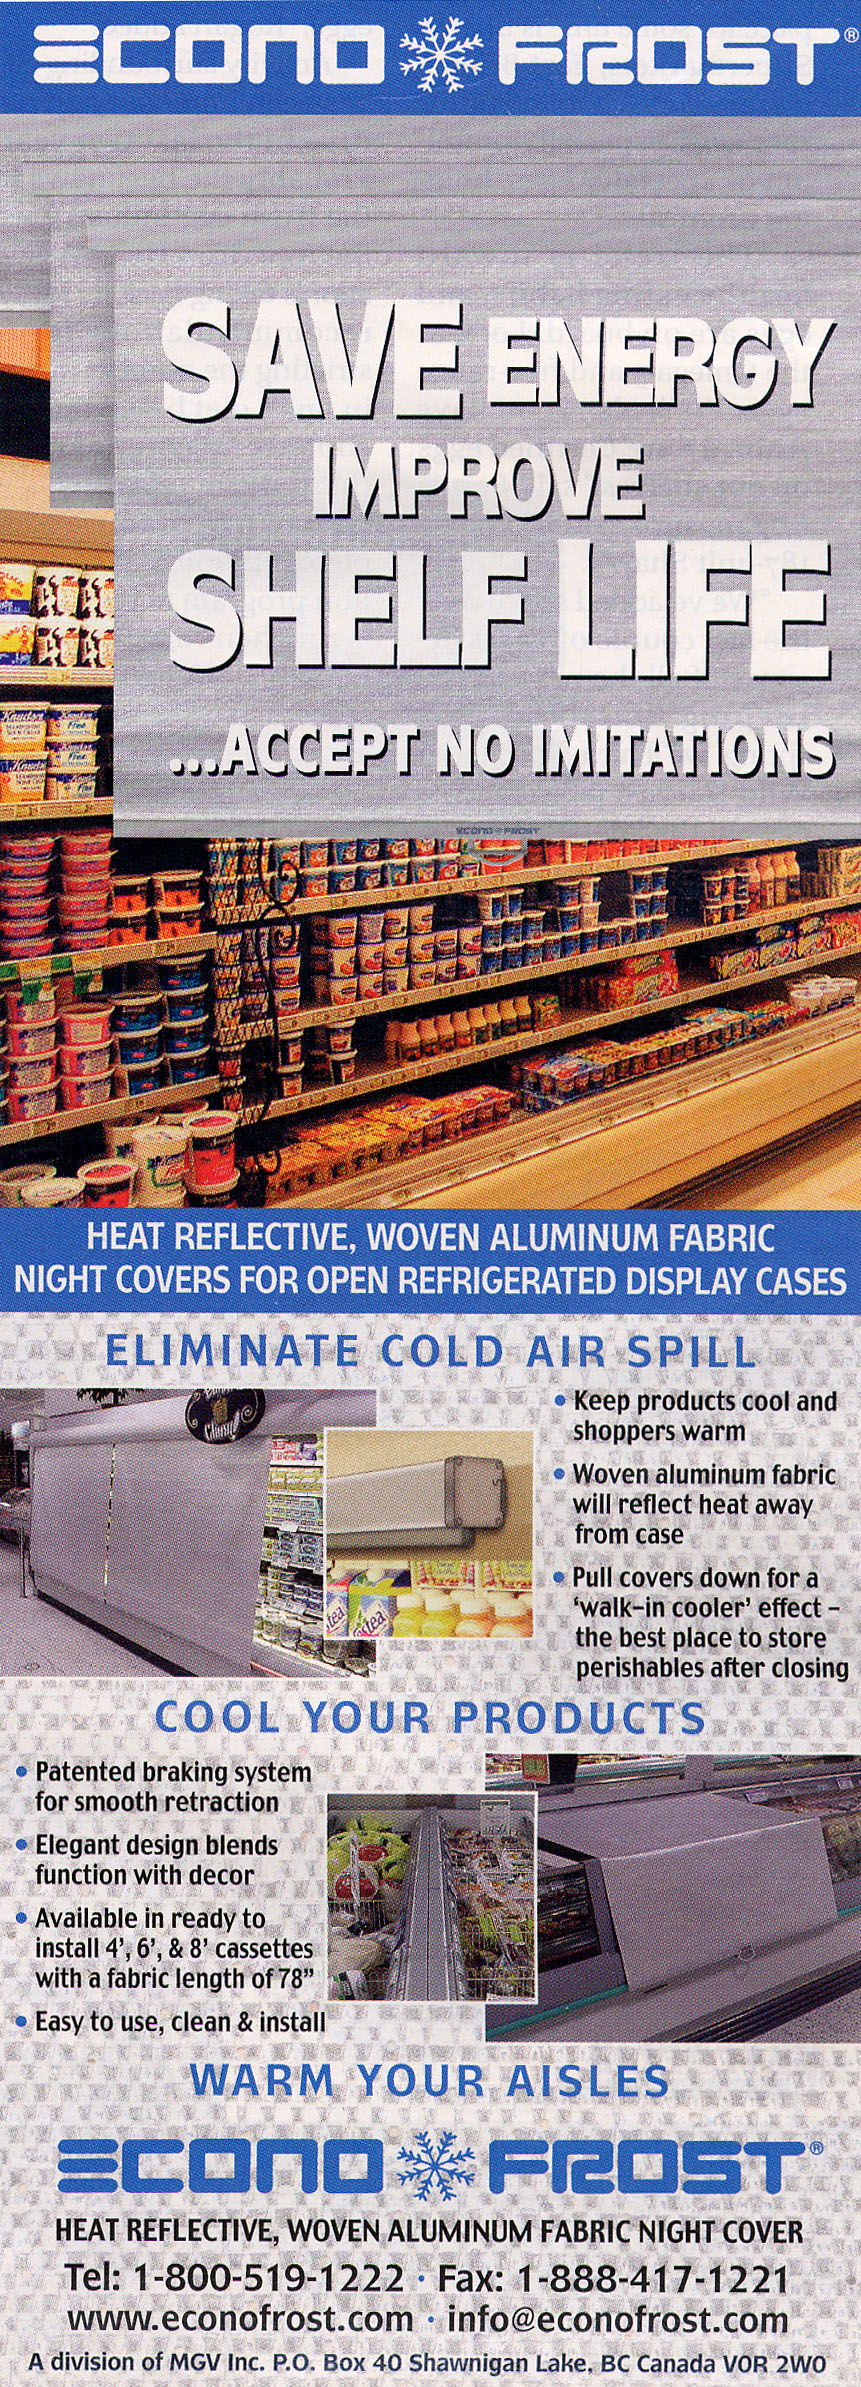 supermarket night covers